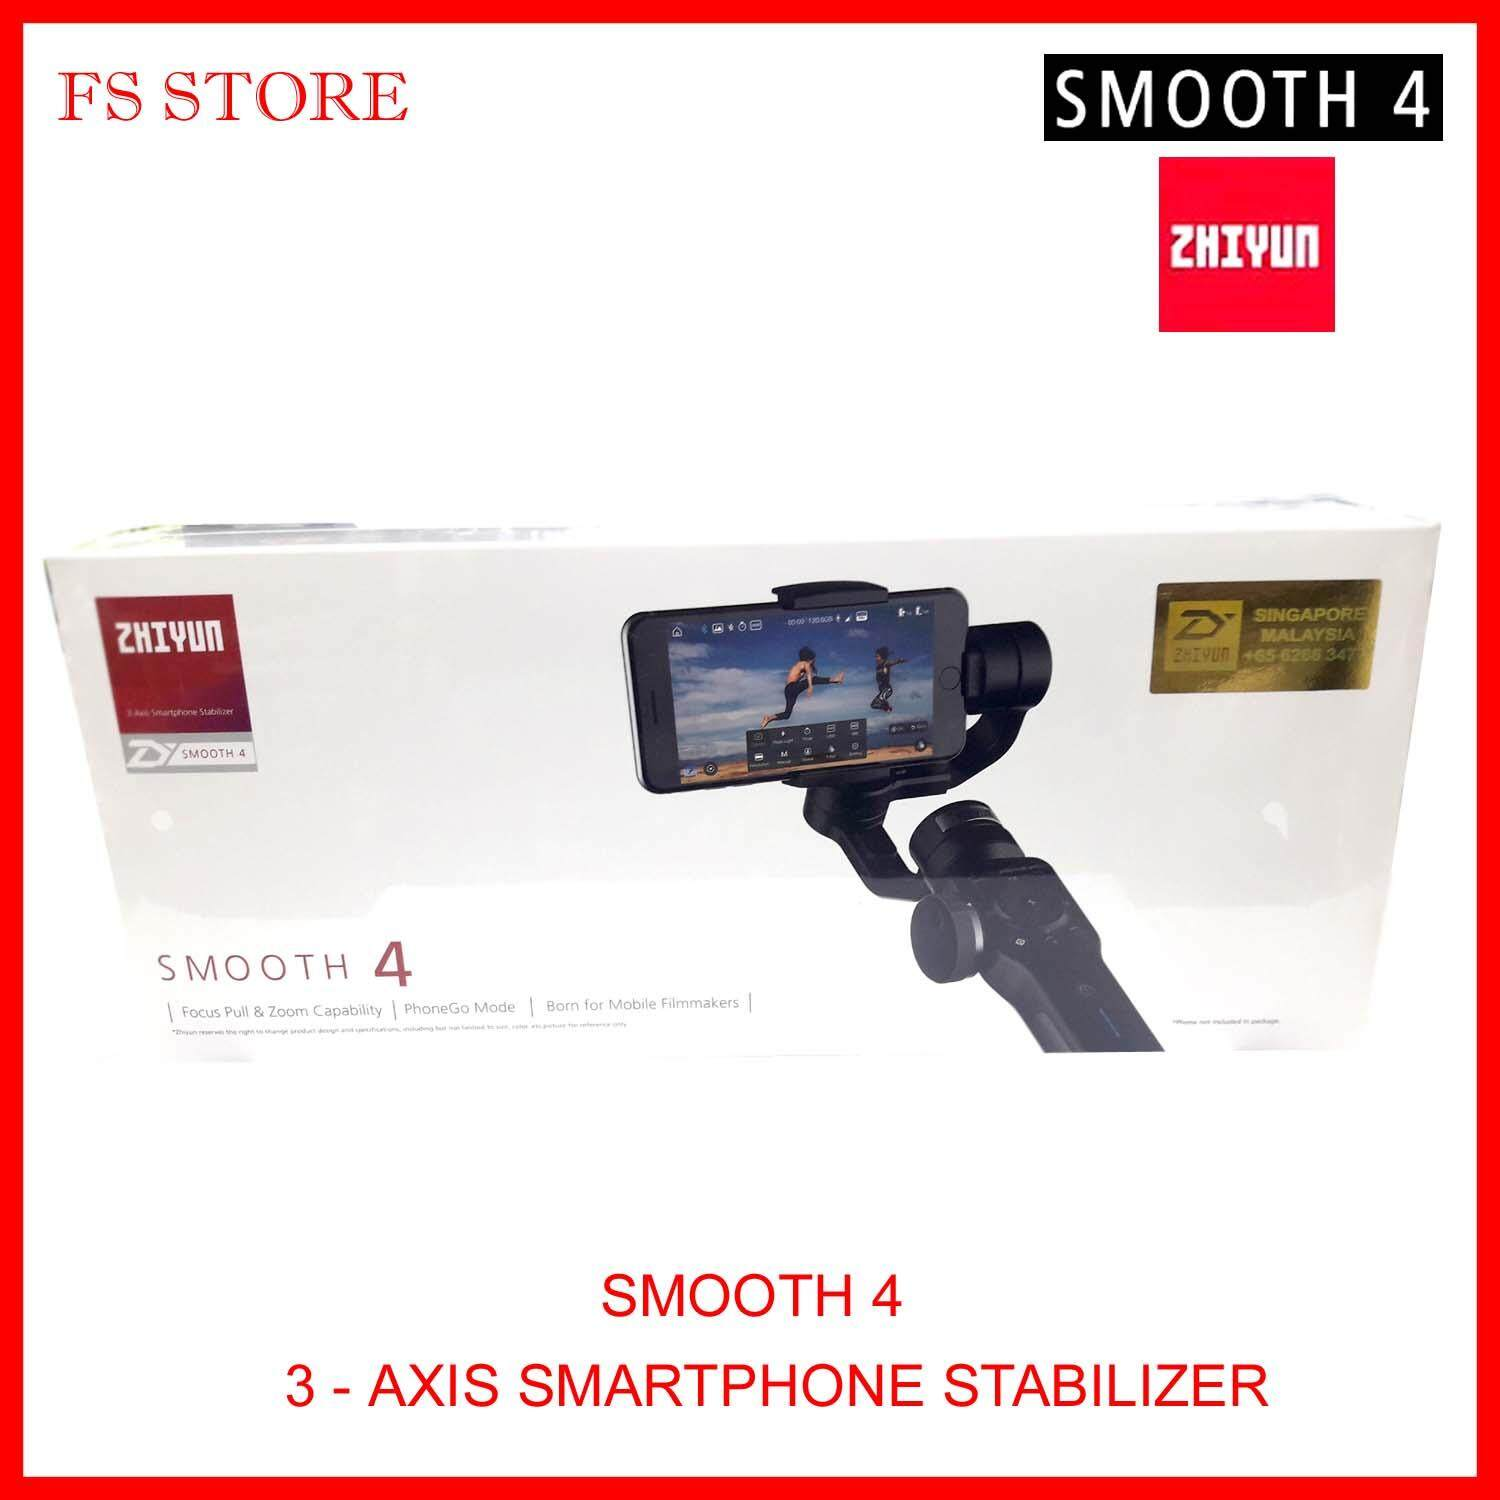 Zhiyun Camera Accessories Price In Malaysia Best Tech Smooth Ii 3 Axis Handheld Gimbal Stabilizer For Smartphones 4 Smartphone